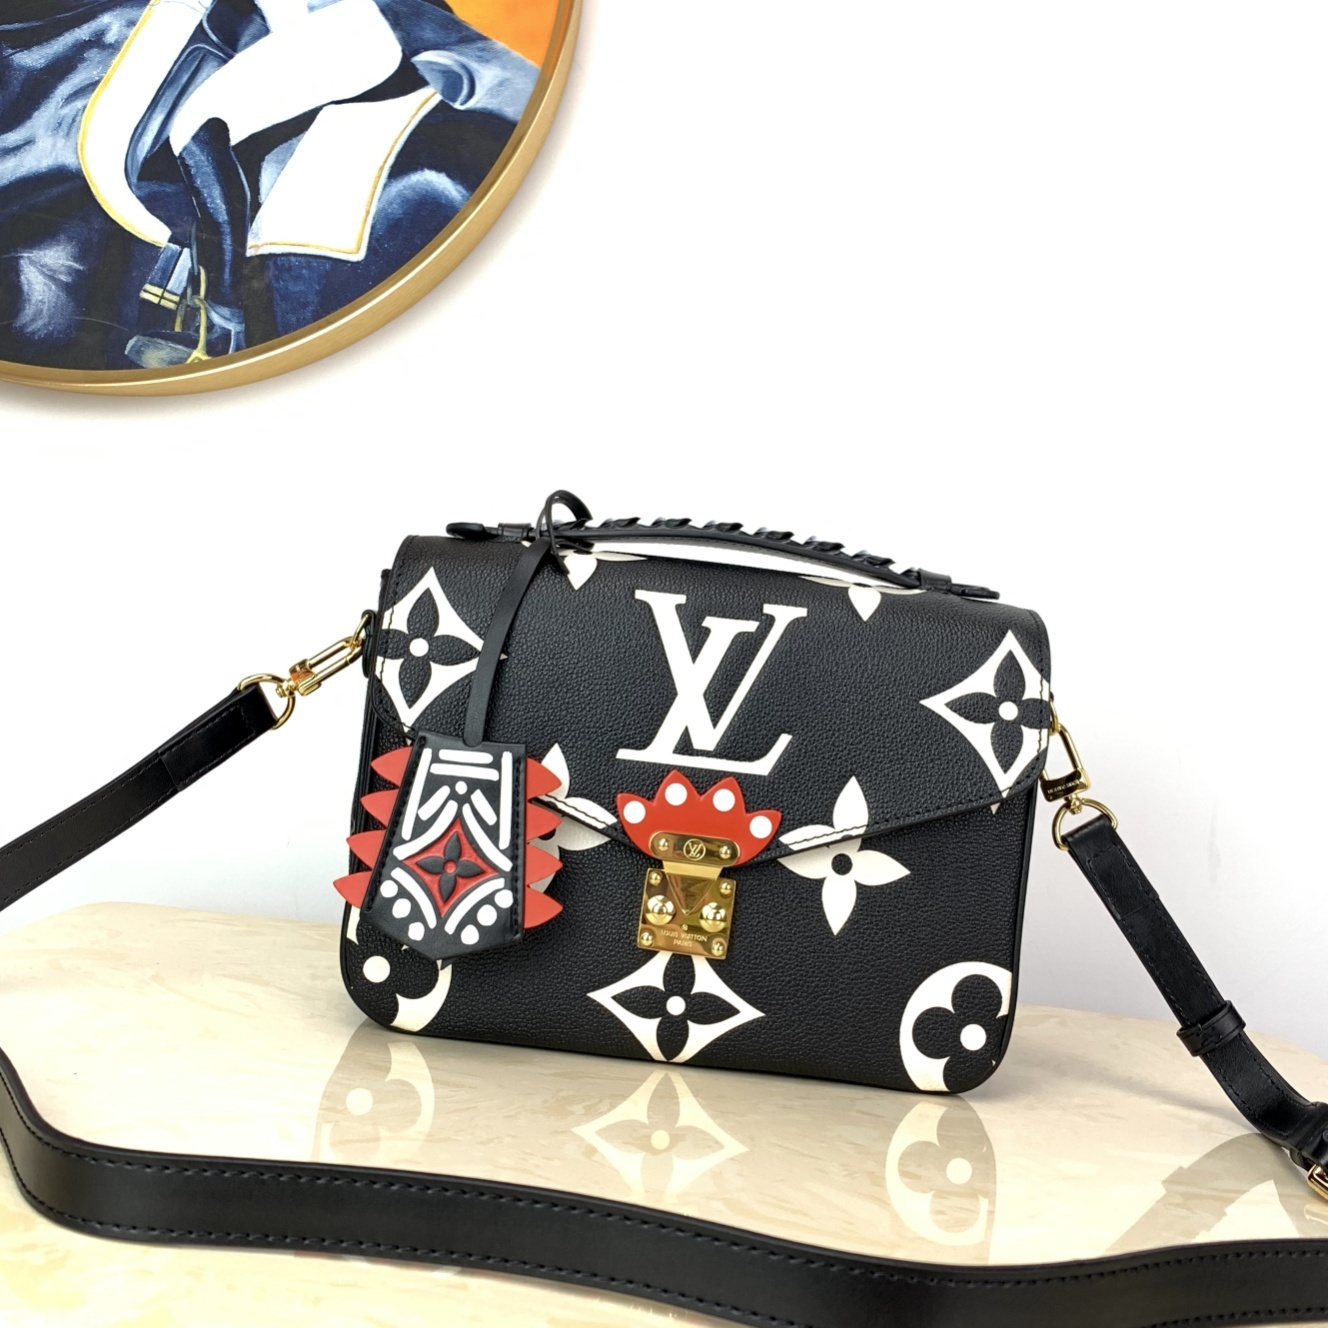 New Replica Louis Vuitton M45385 LV Crafty Pochette Metis Embossed Grained Cowhide Leather